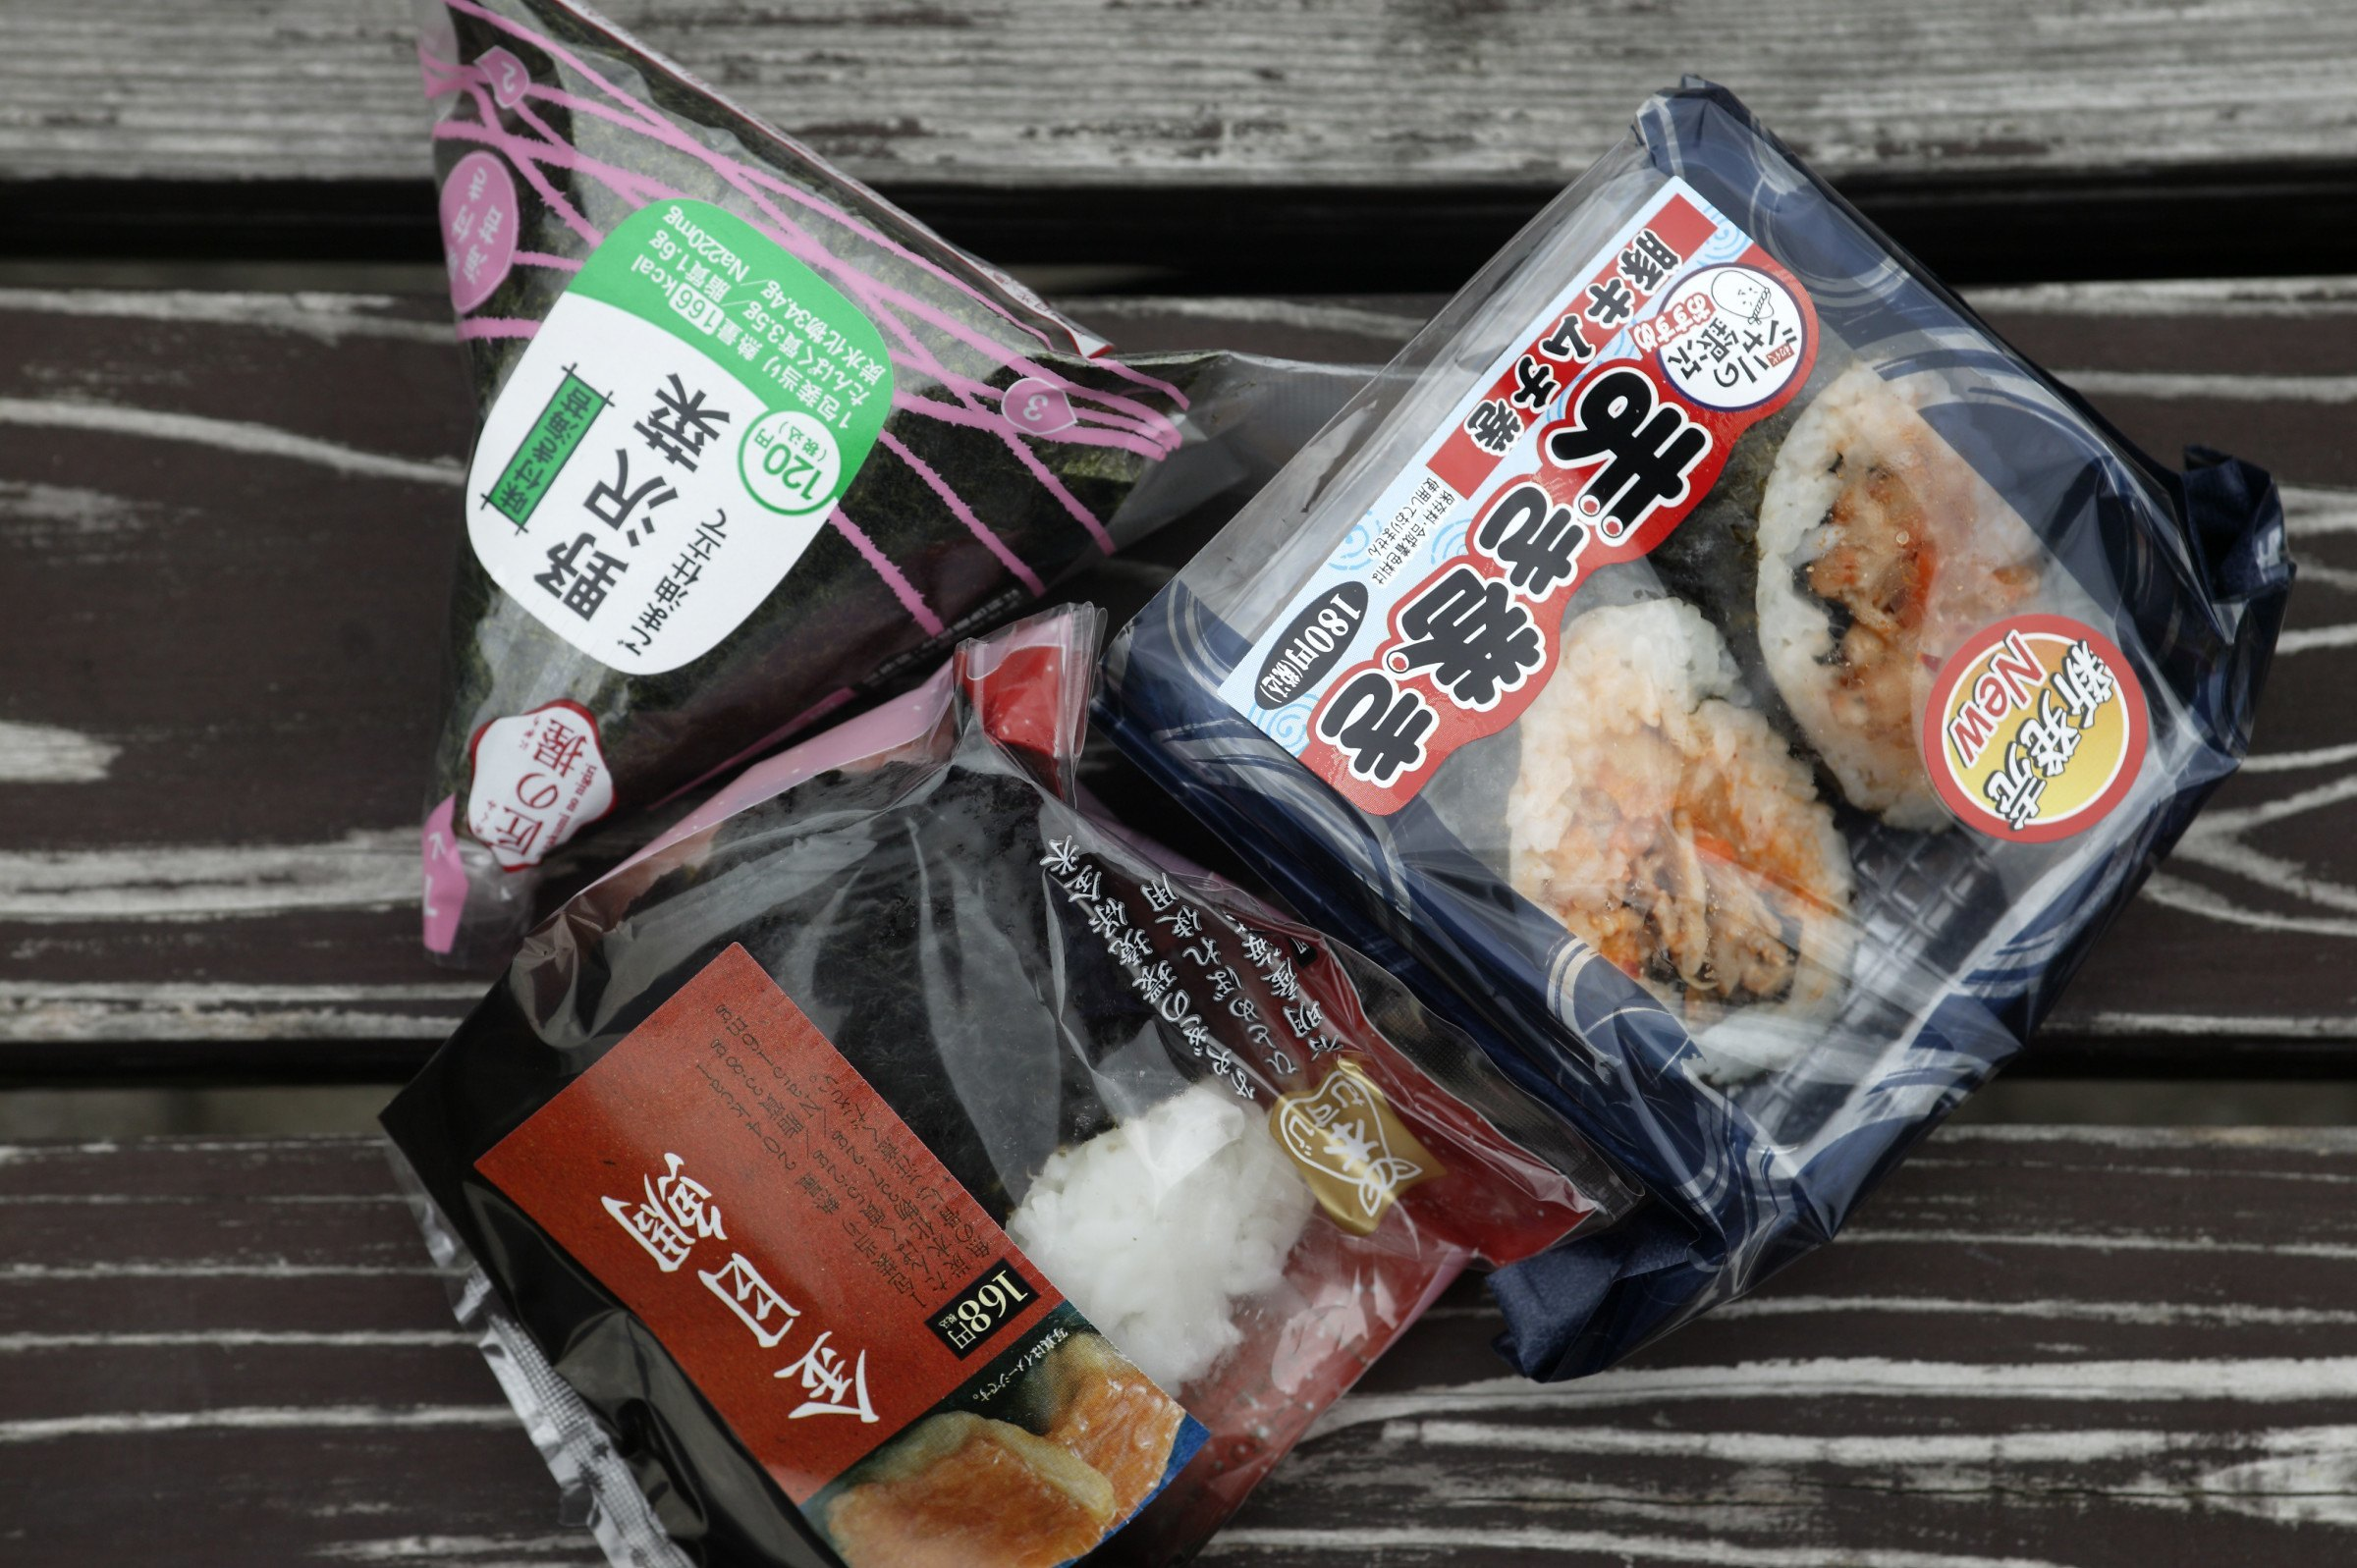 Convenience store snacks - rice balls and maki rolls